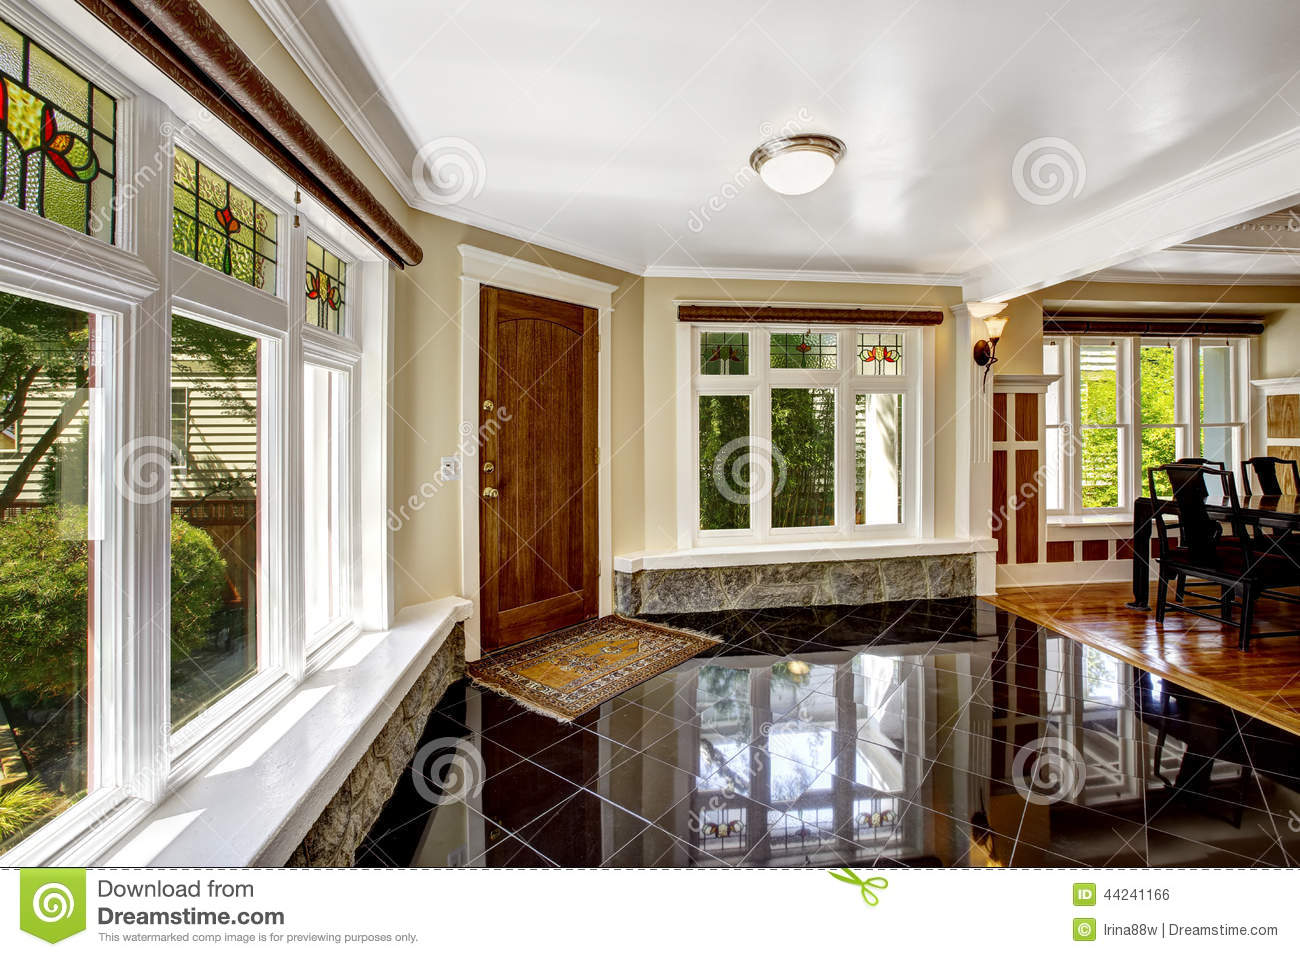 Foyer with black shiny tile floor and stone trim under the windo foyer with black shiny tile floor and stone trim under the windo doublecrazyfo Image collections